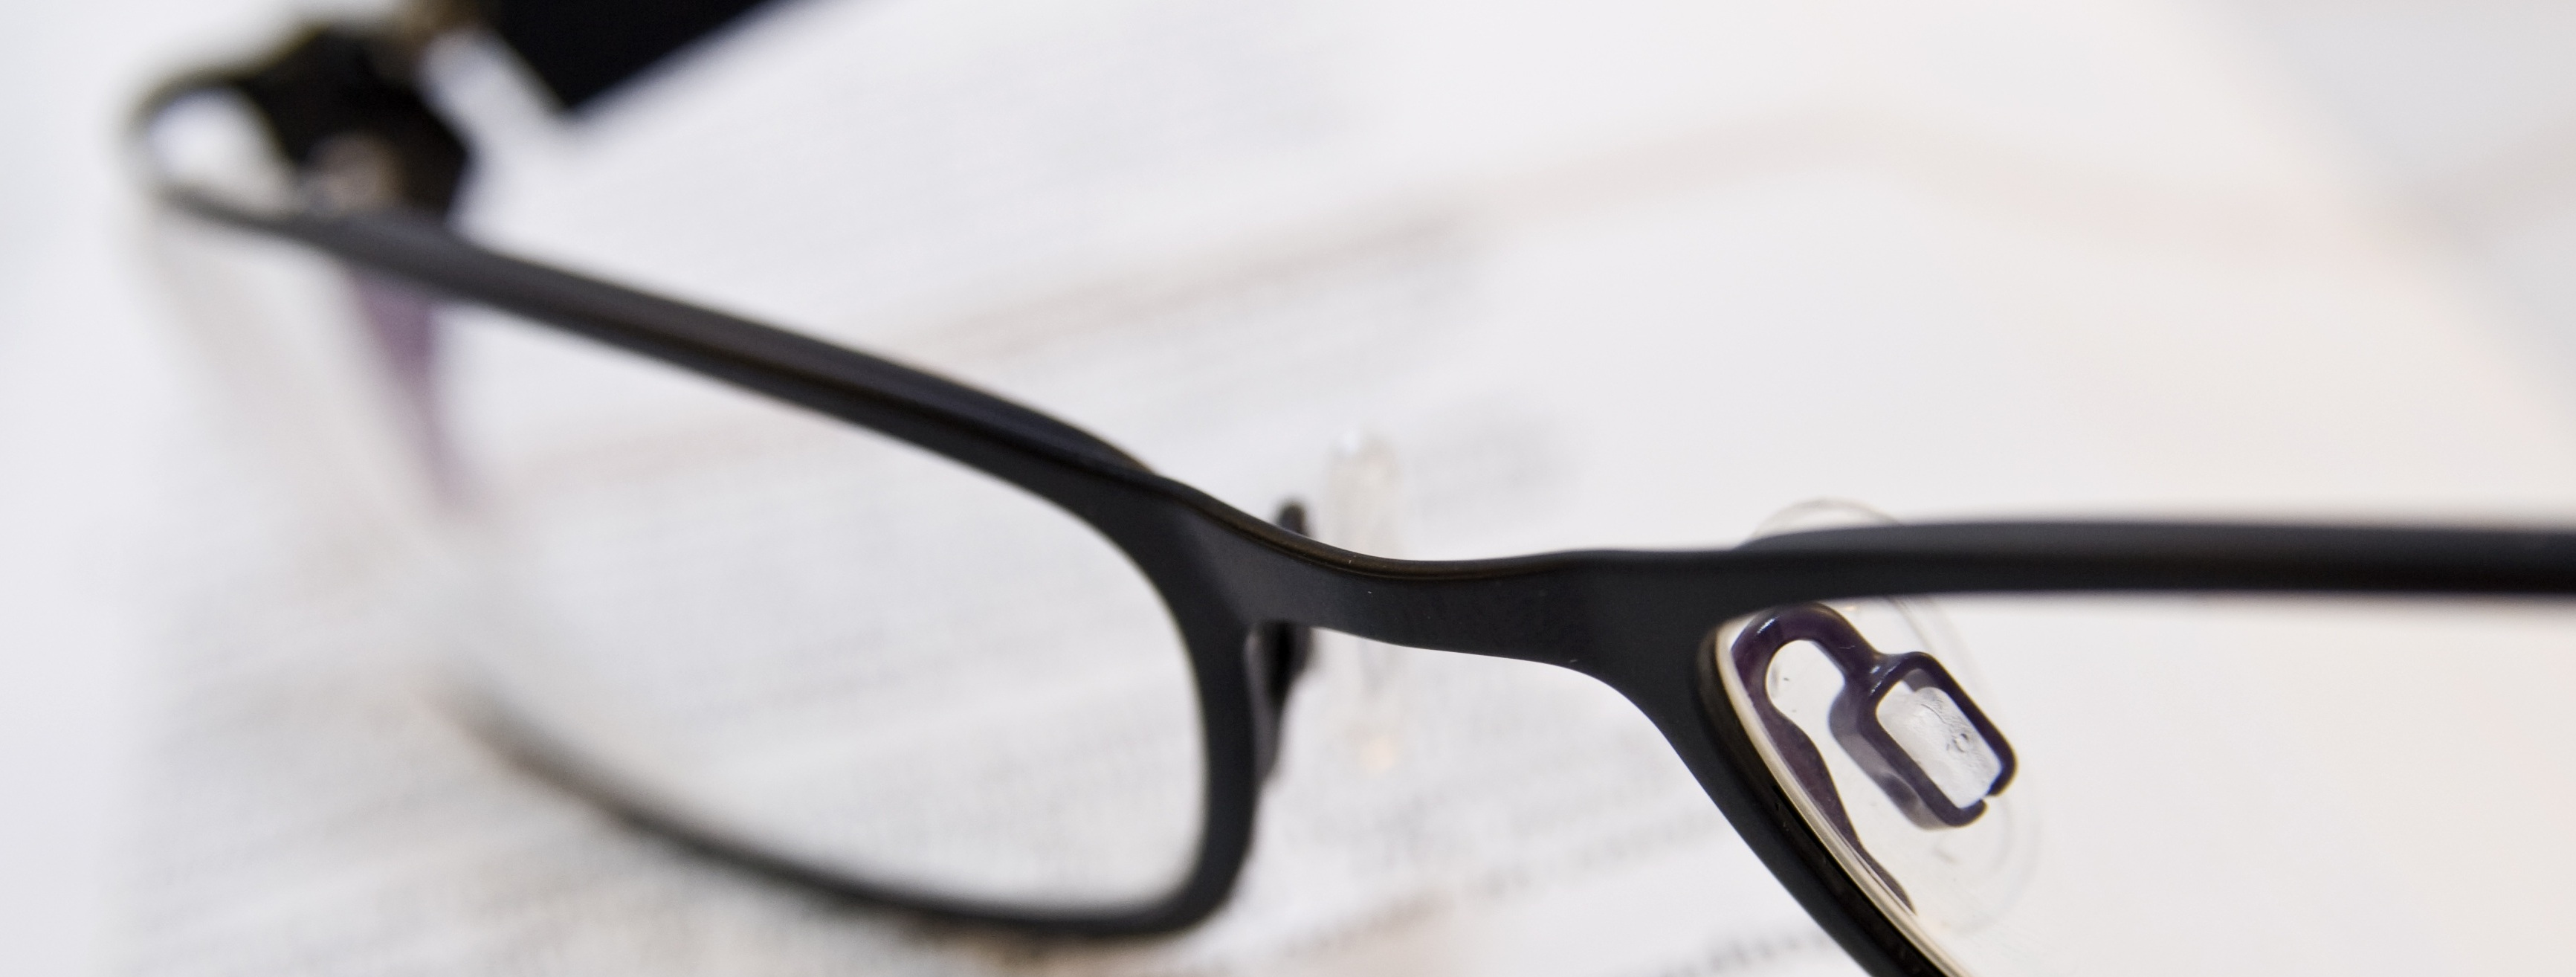 Reading glasses as a symbol for proofreading services